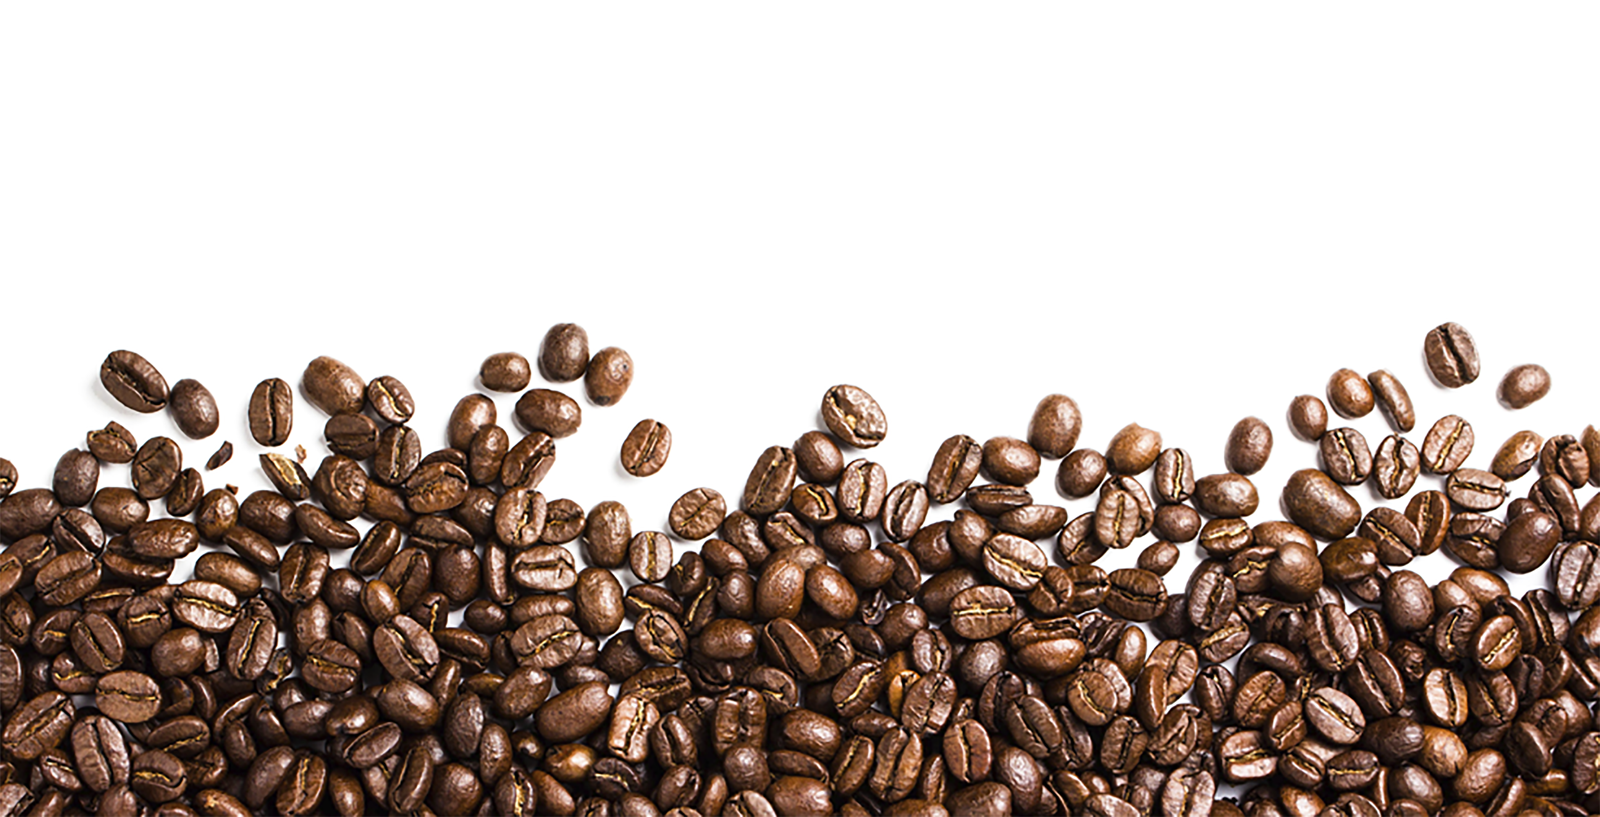 Coffee beans PNG images free download.